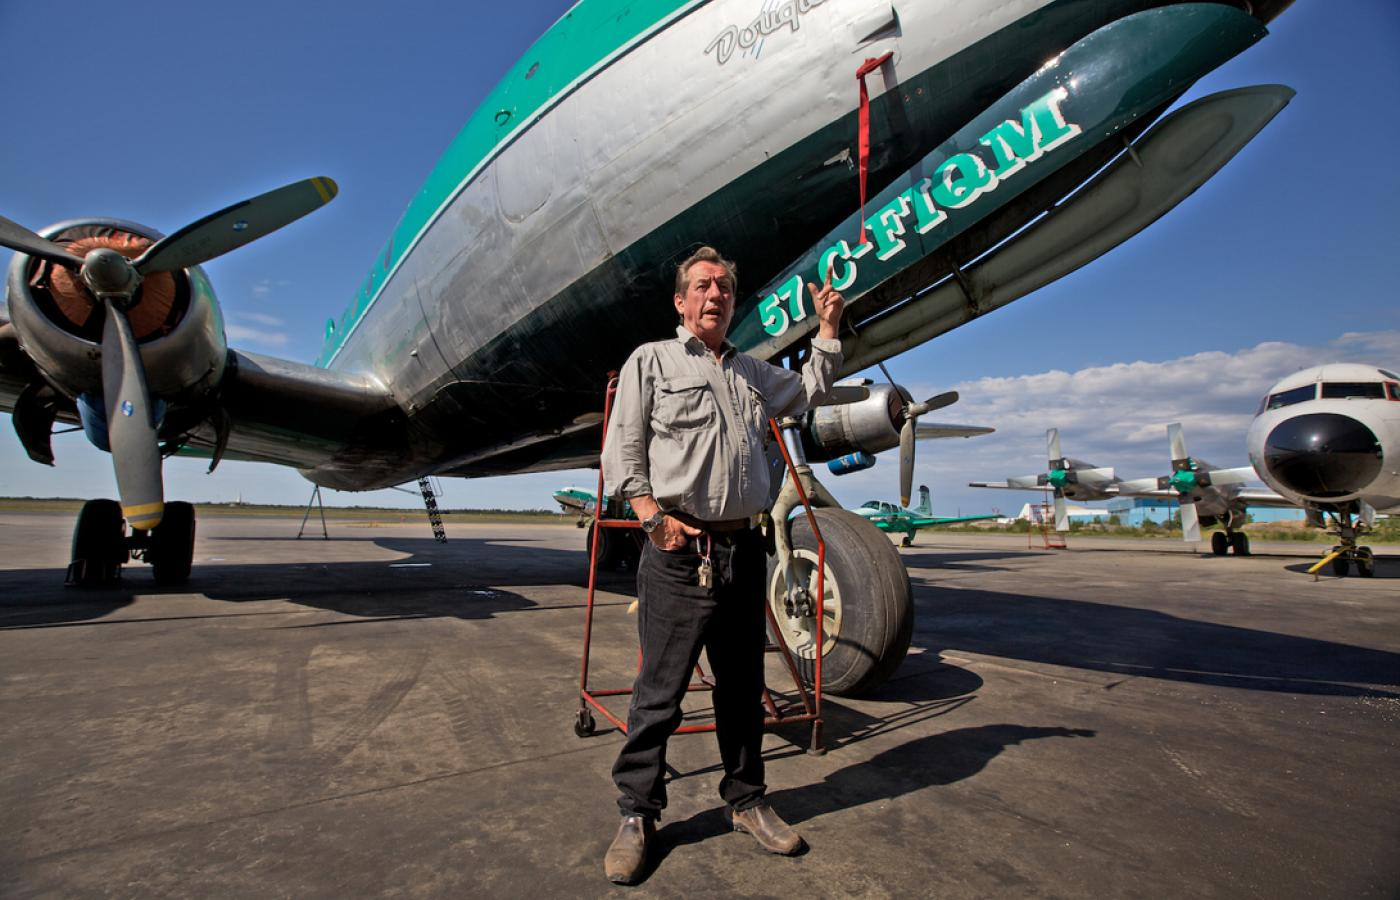 Buffalo Joe McBryan is the iconic owner of Buffalo Airways and feature character of Ice Pilots NWT.